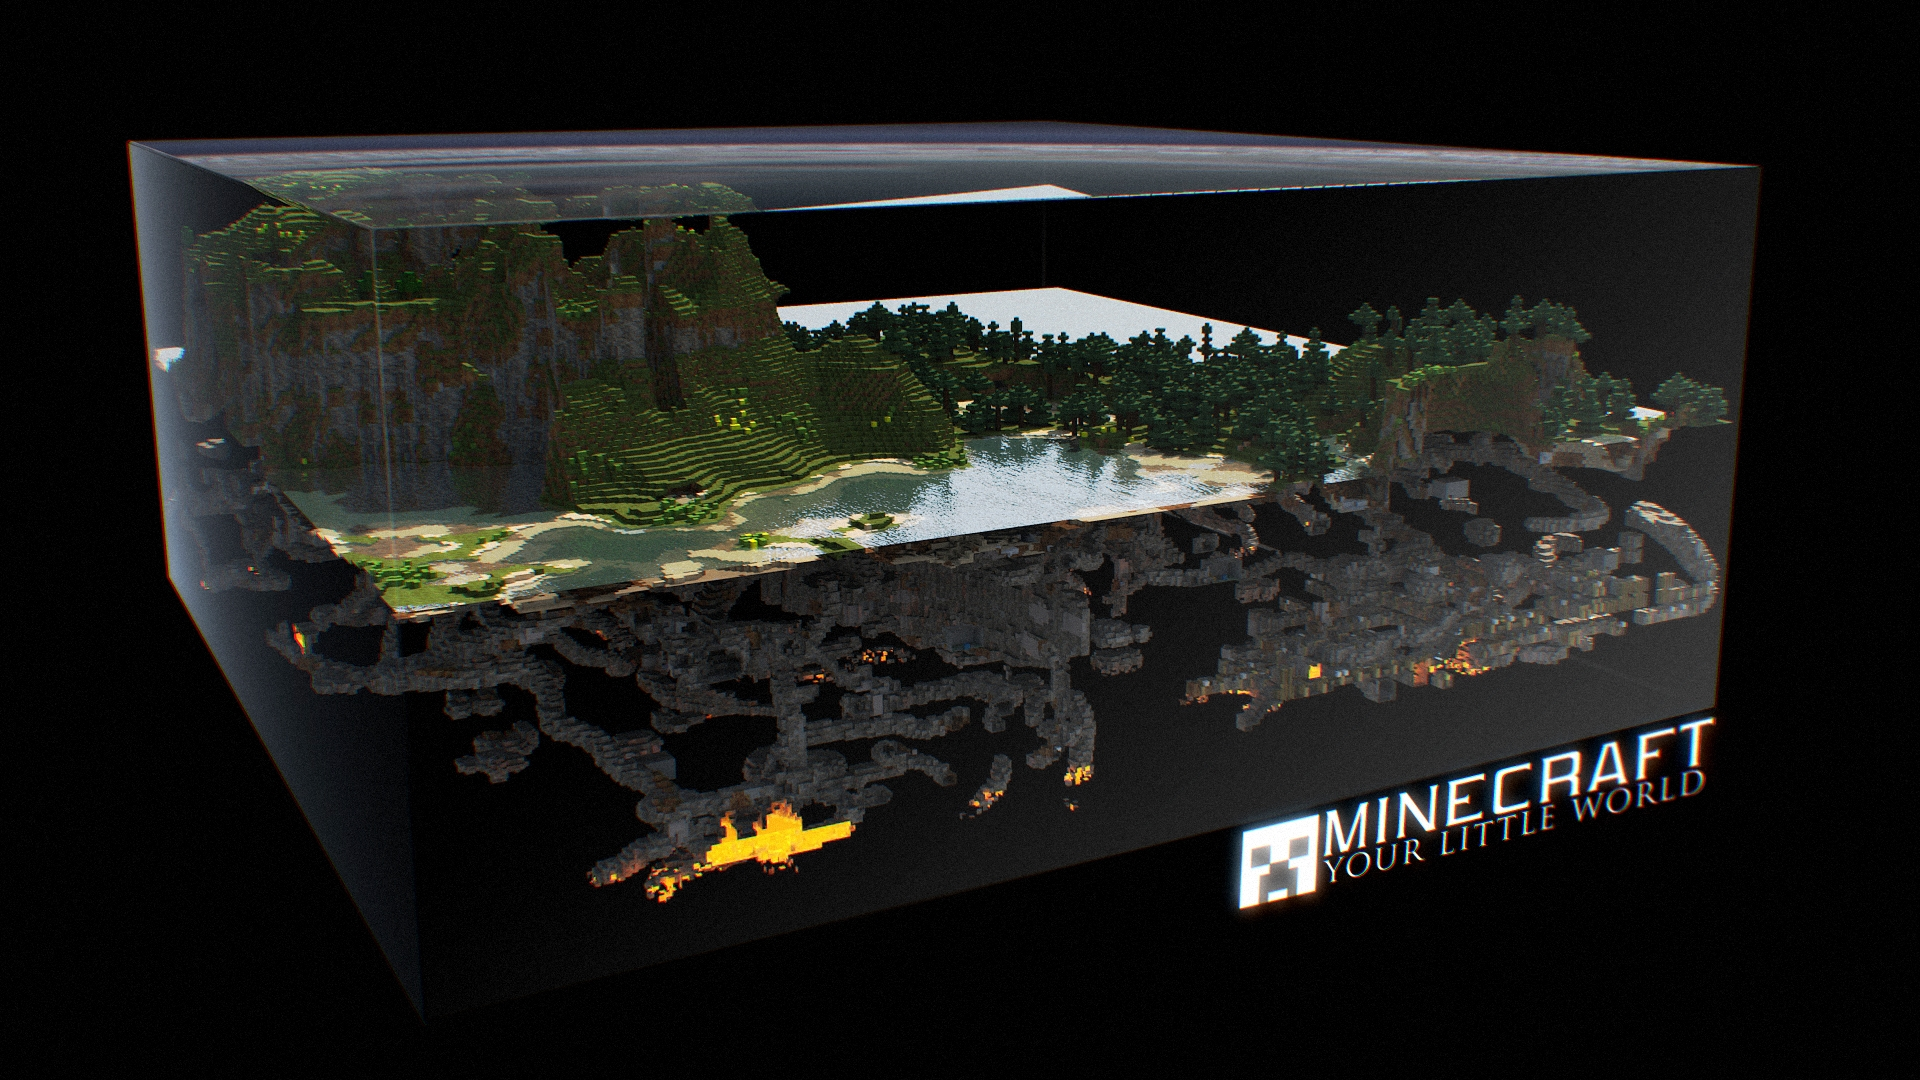 Epic Minecraft Cross Section Wallpaper image   Le Fancy Wallpapers 1920x1080